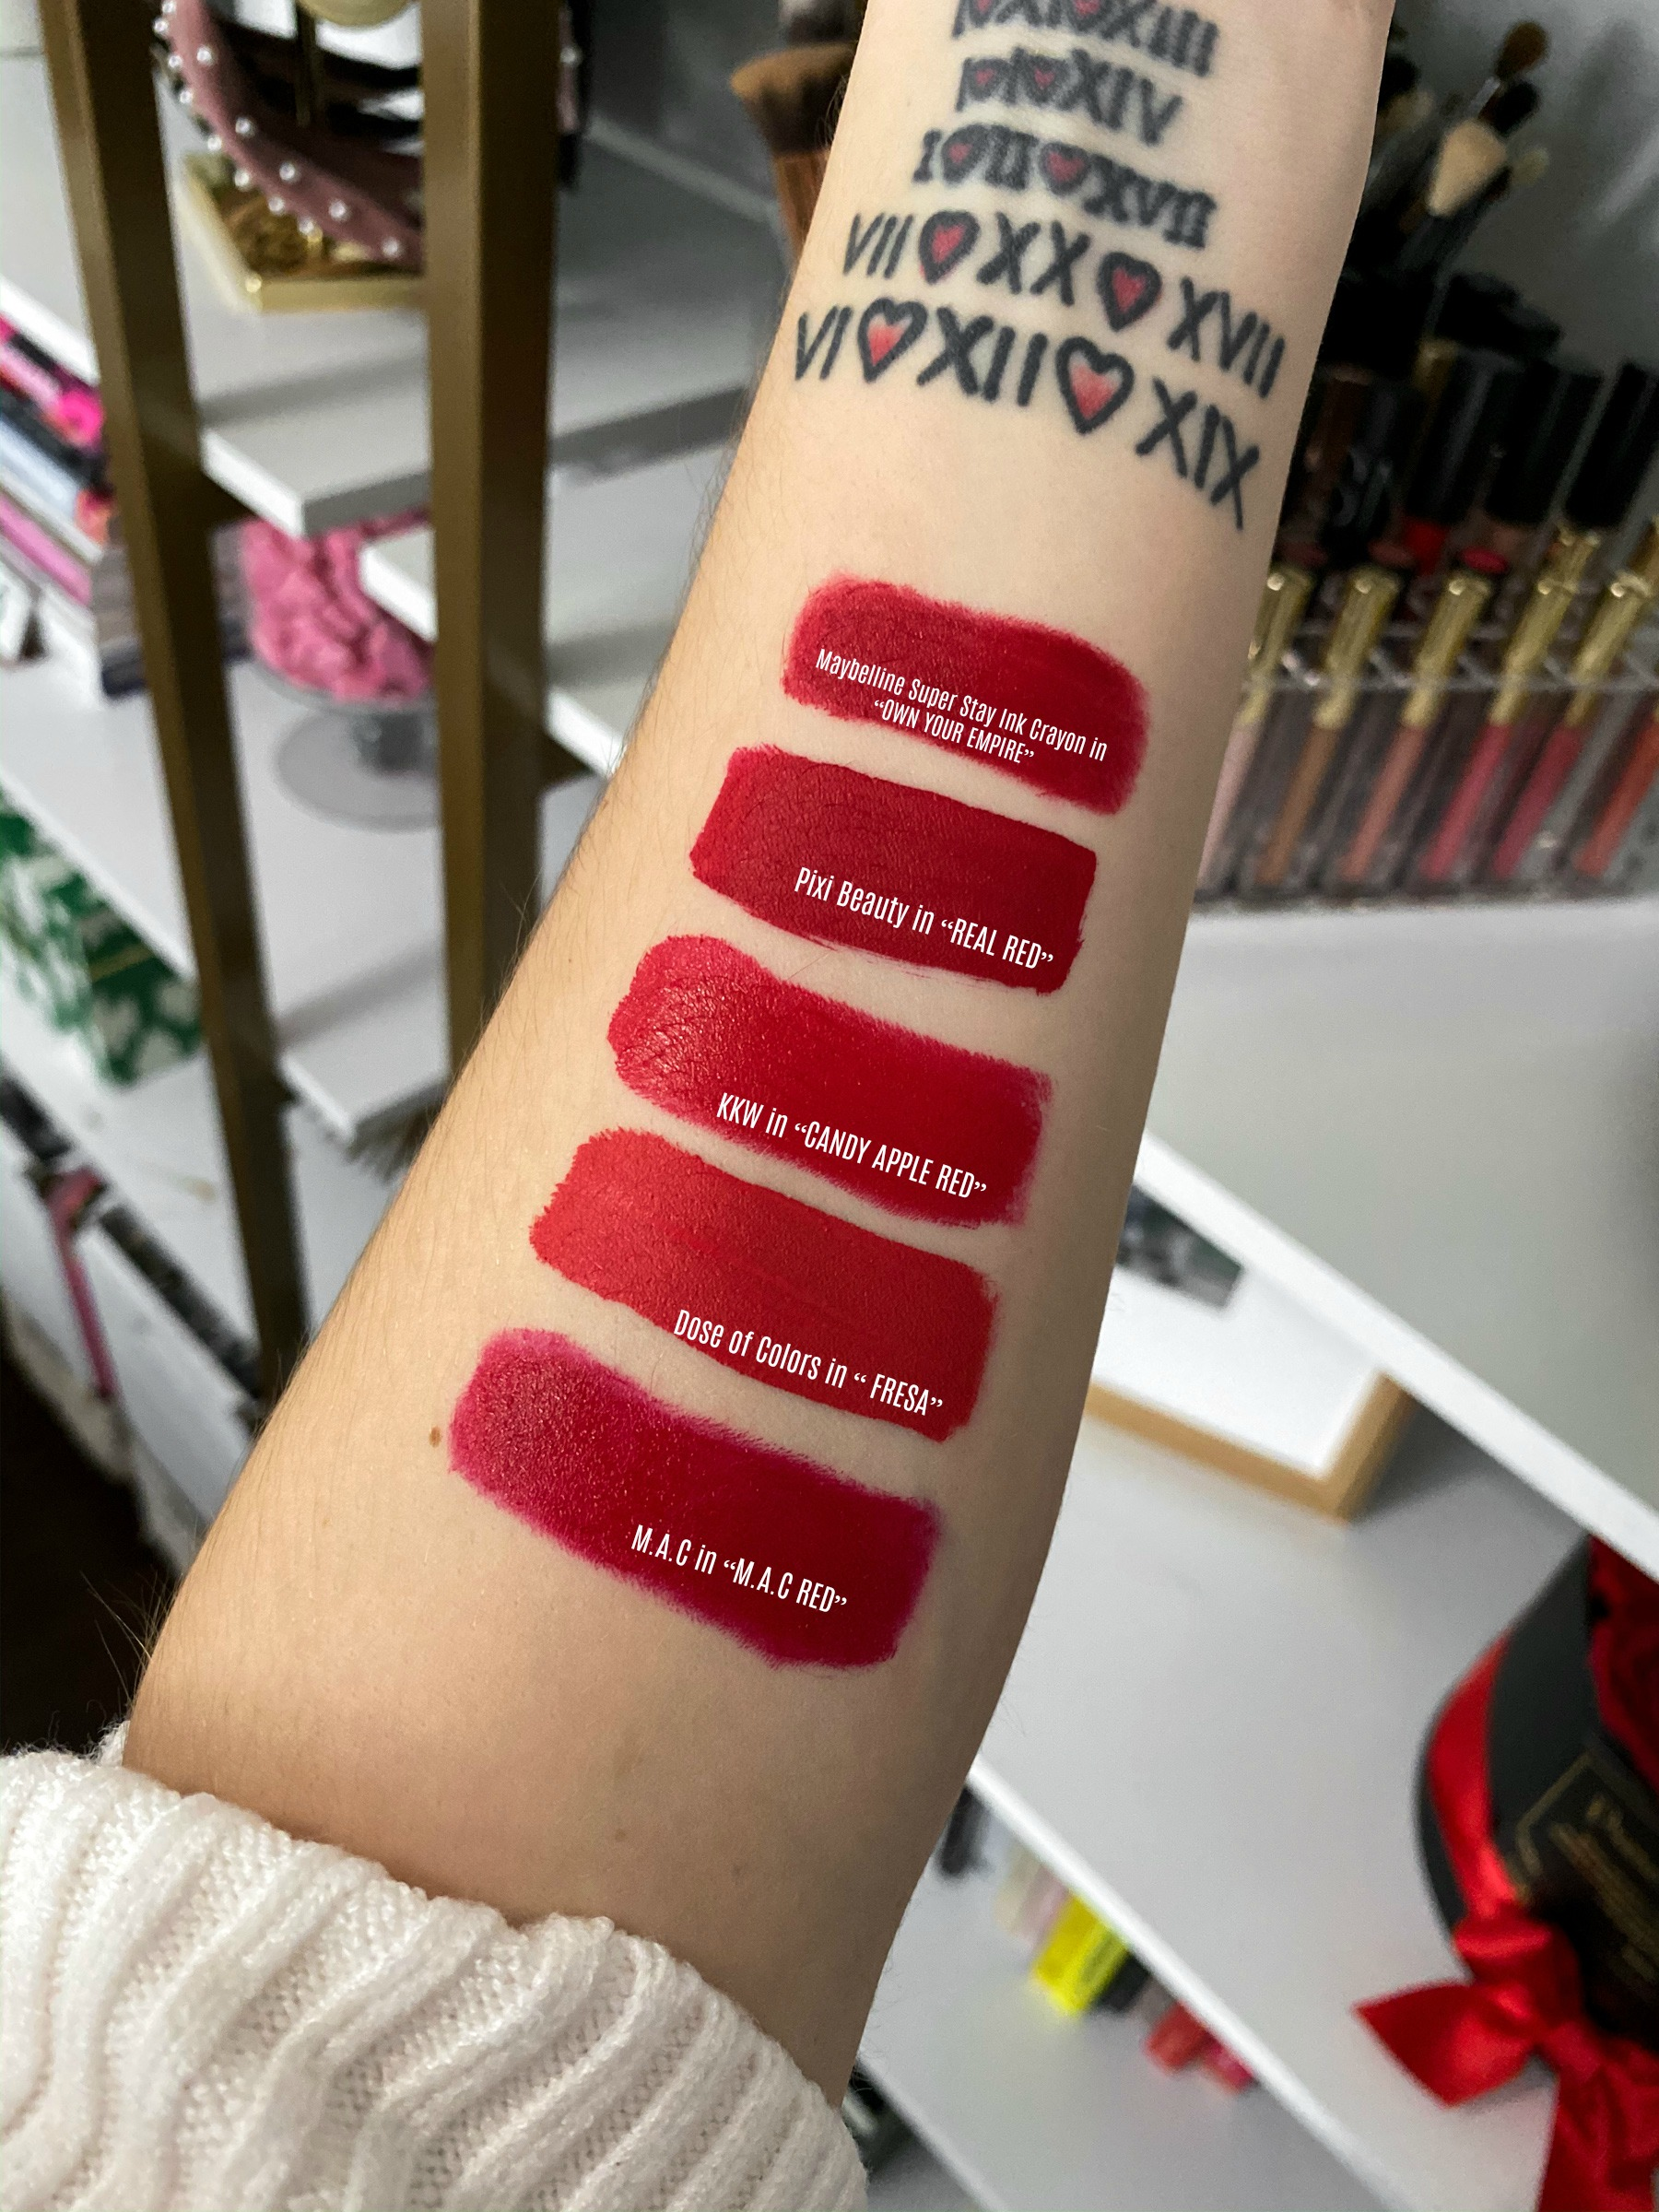 Looking for a GOOD red lipstick? Houston beauty blogger Elly Brown Shares 5 of her favorite Red Lipsticks Under $20.